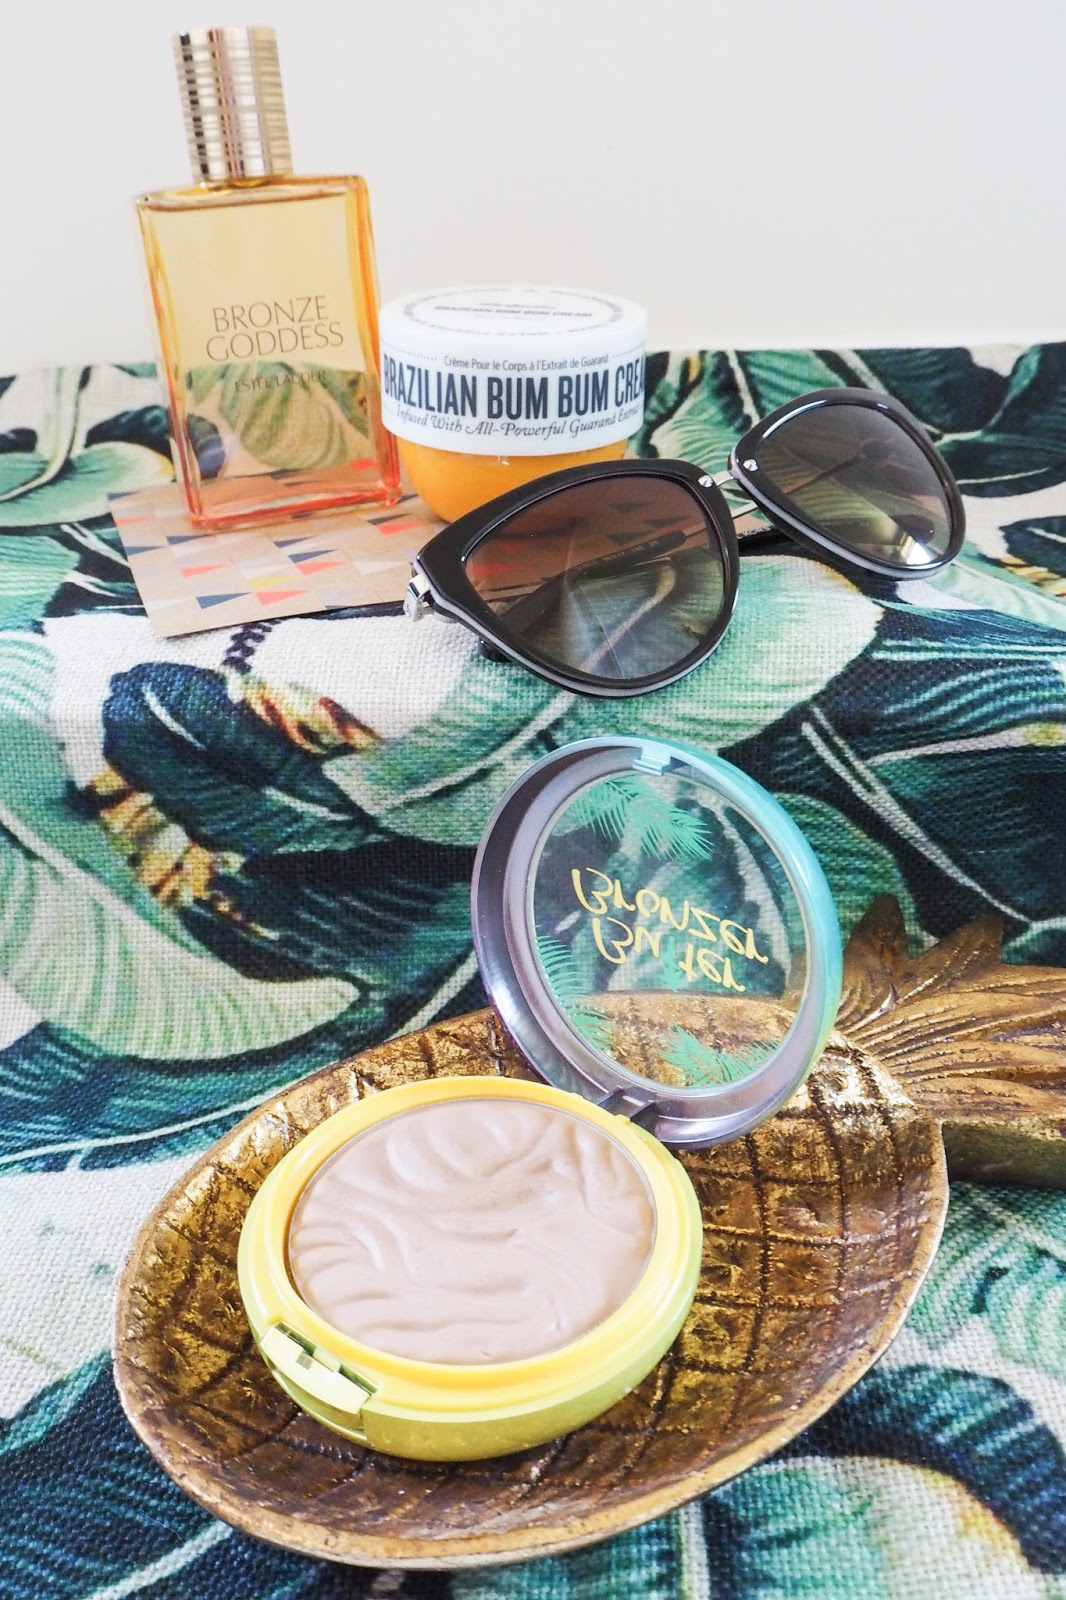 Estee Lauder Bronze Goddess, Brazilian Bum Bum Cream and Butter Bronzer